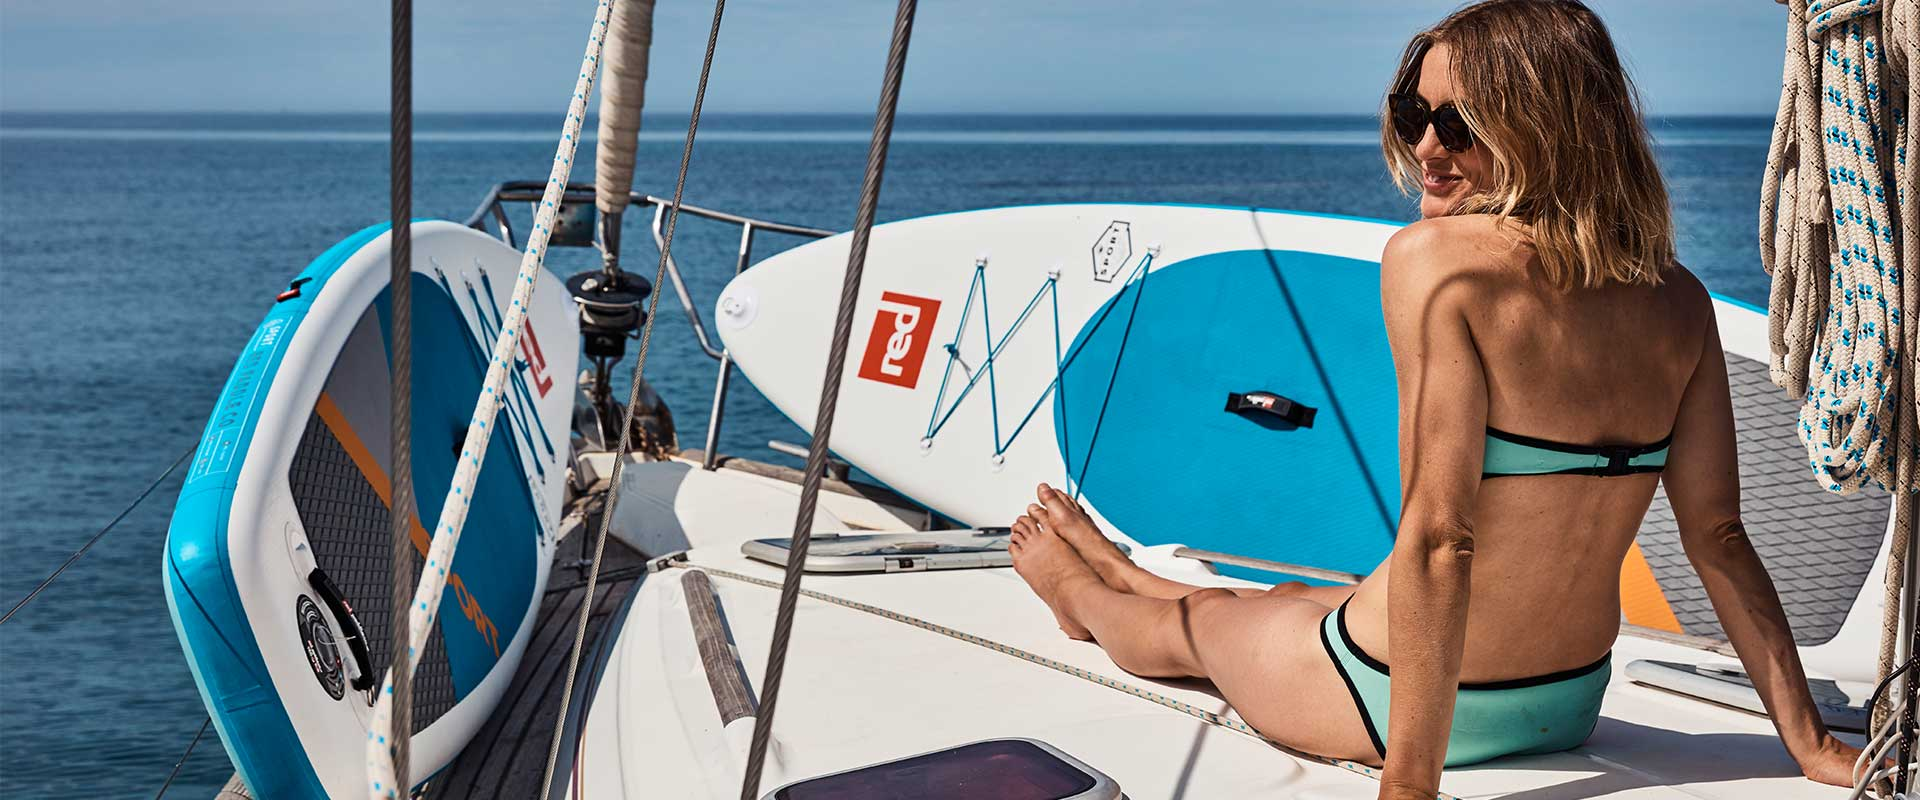 woman on yacht with two sport boards on the front